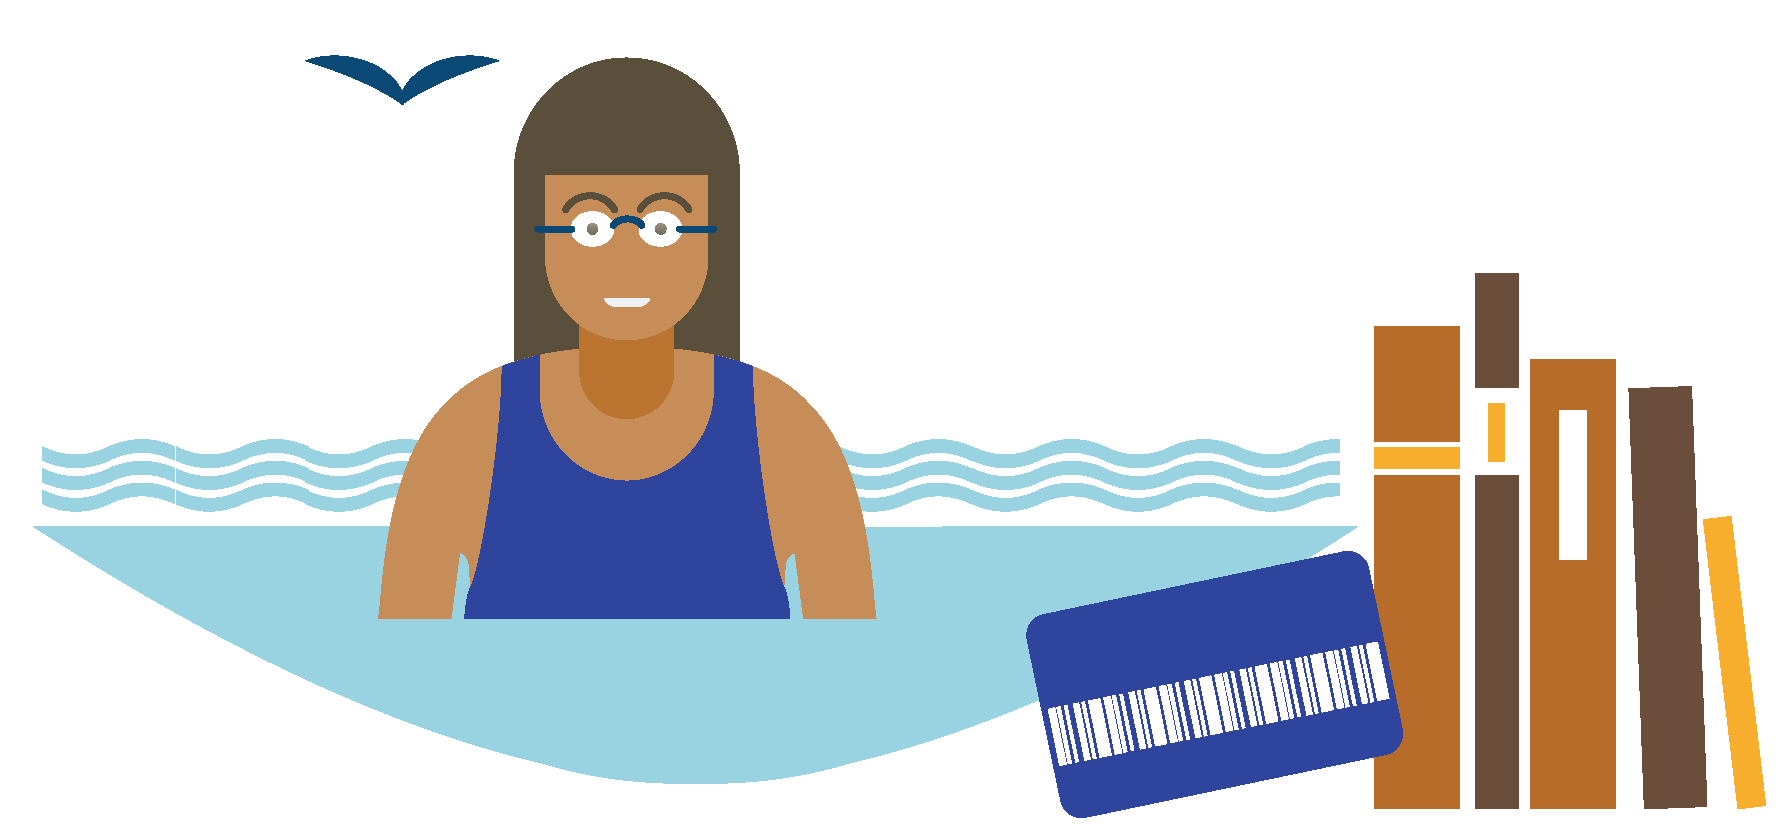 Illustration of a person swimming, a library card, and some library books.